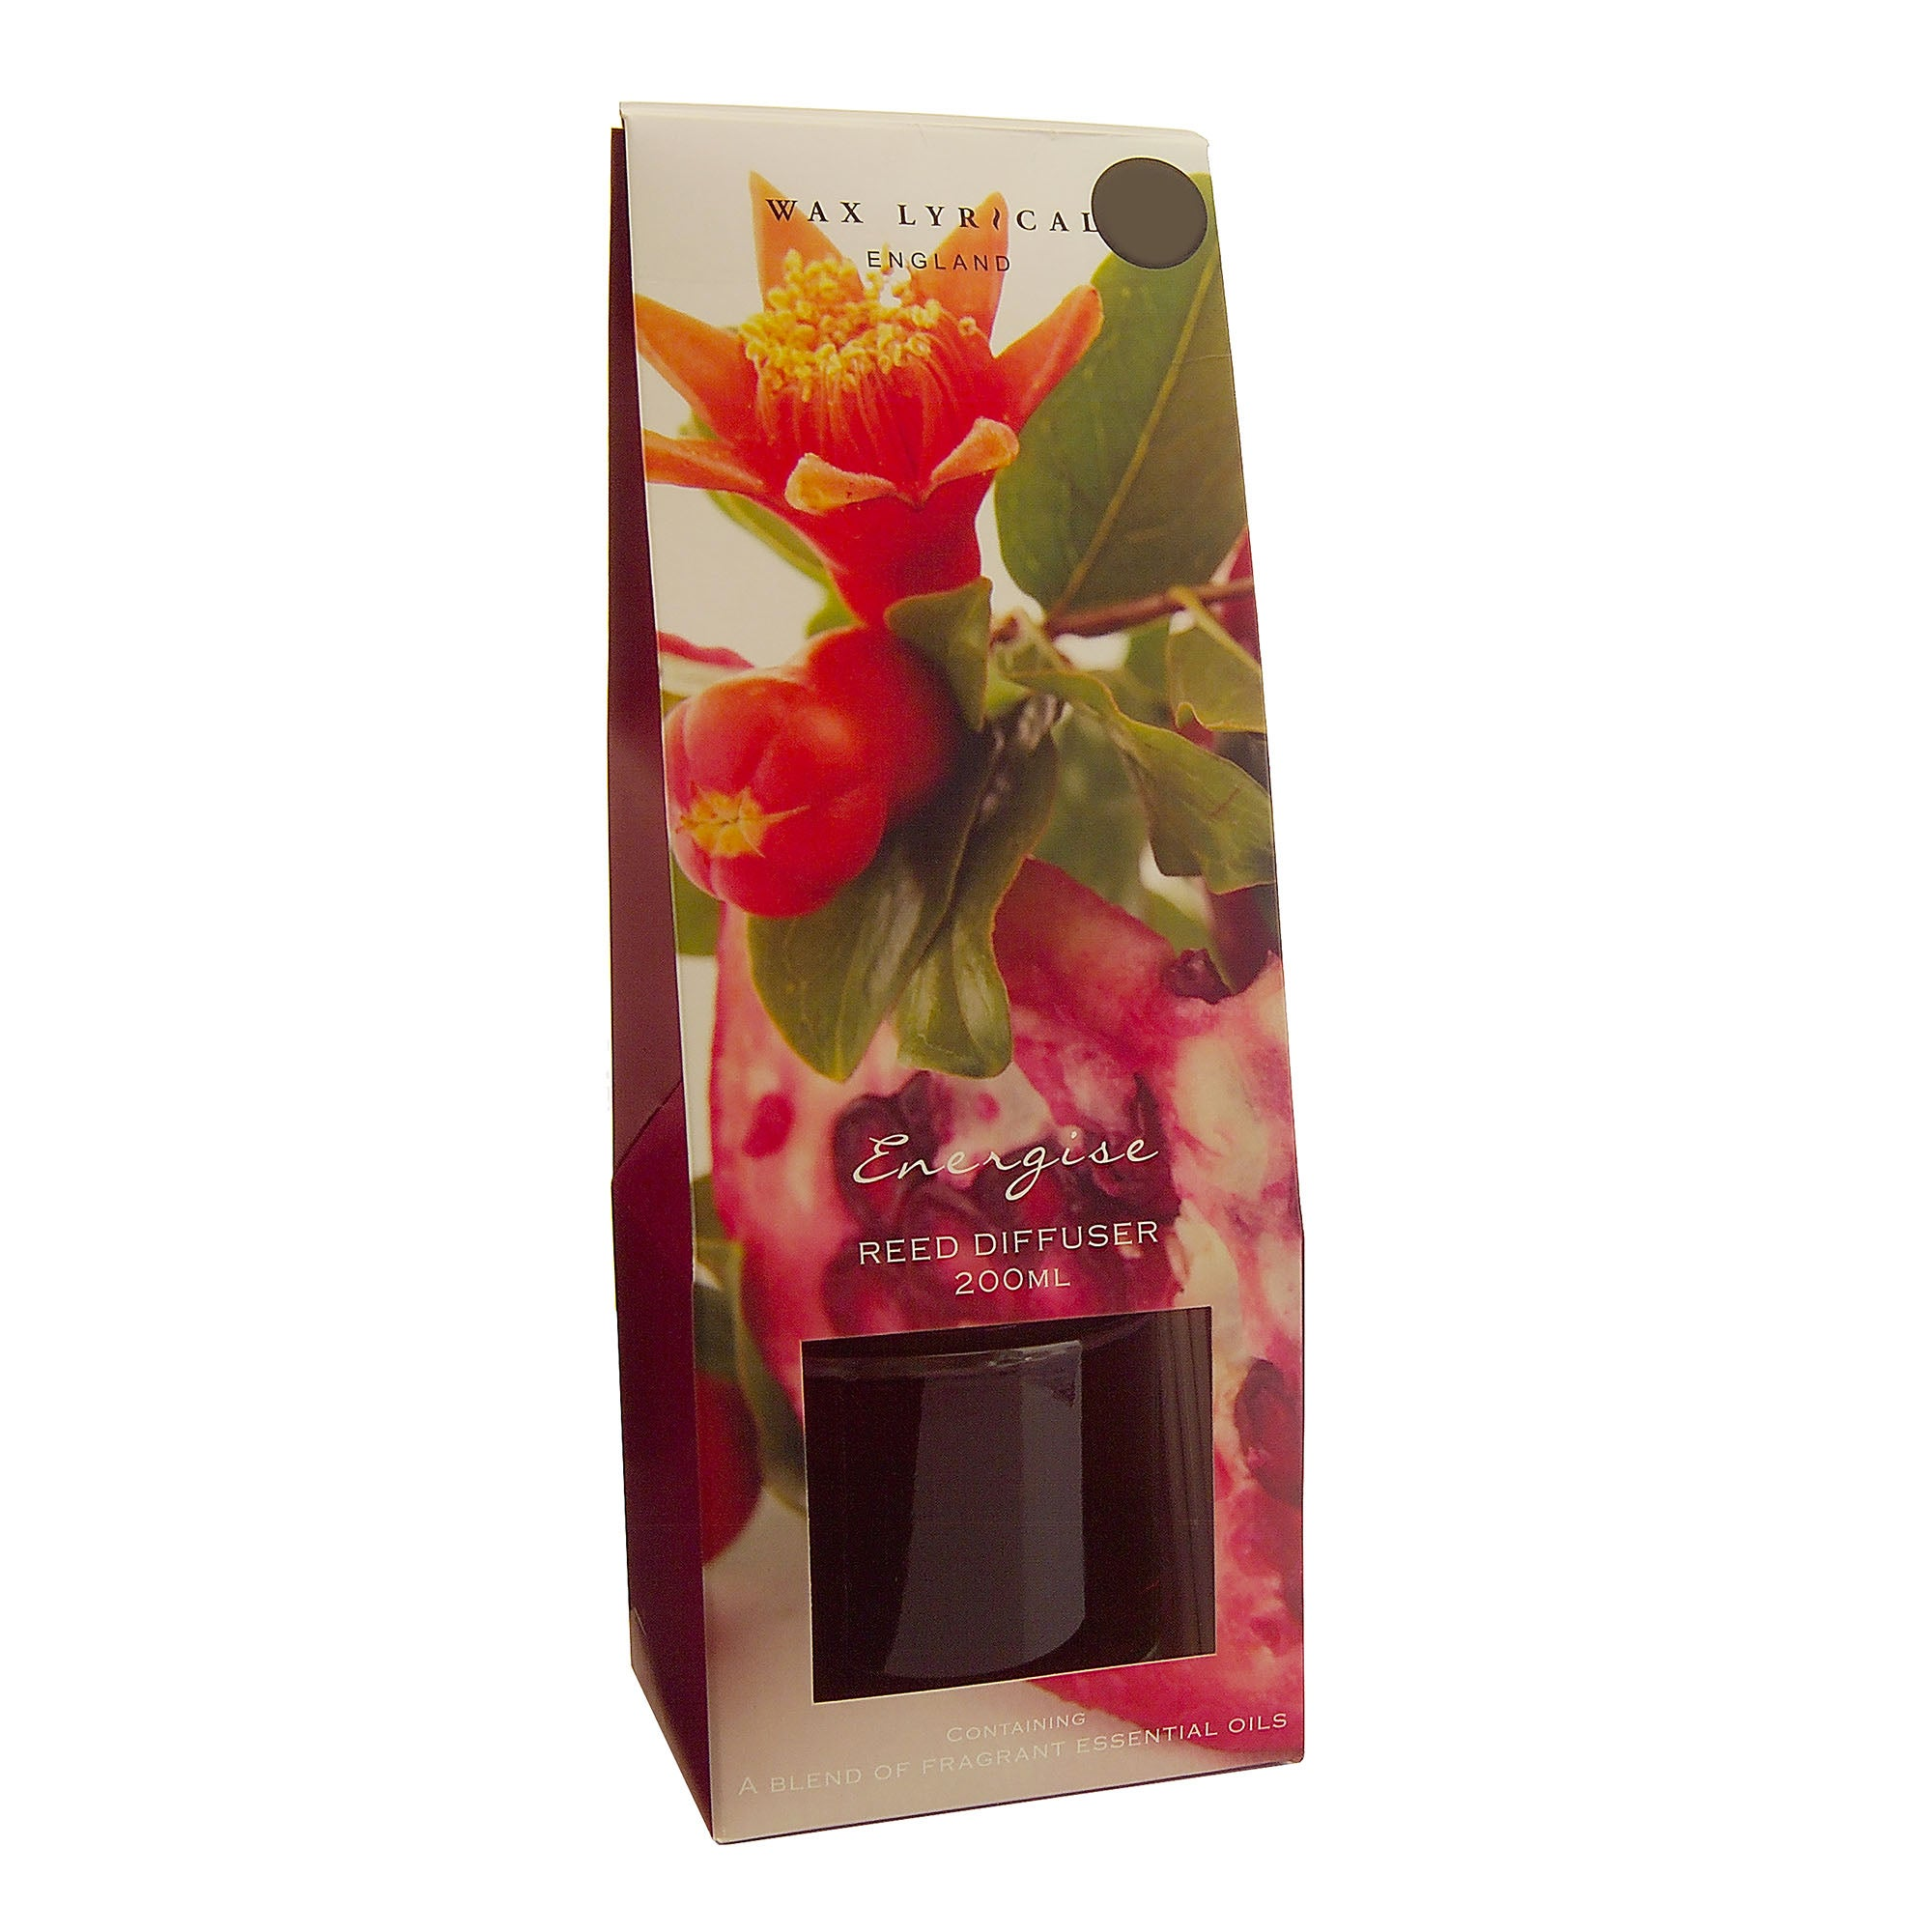 Wax Lyrical Energise 200ml Reed Diffuser